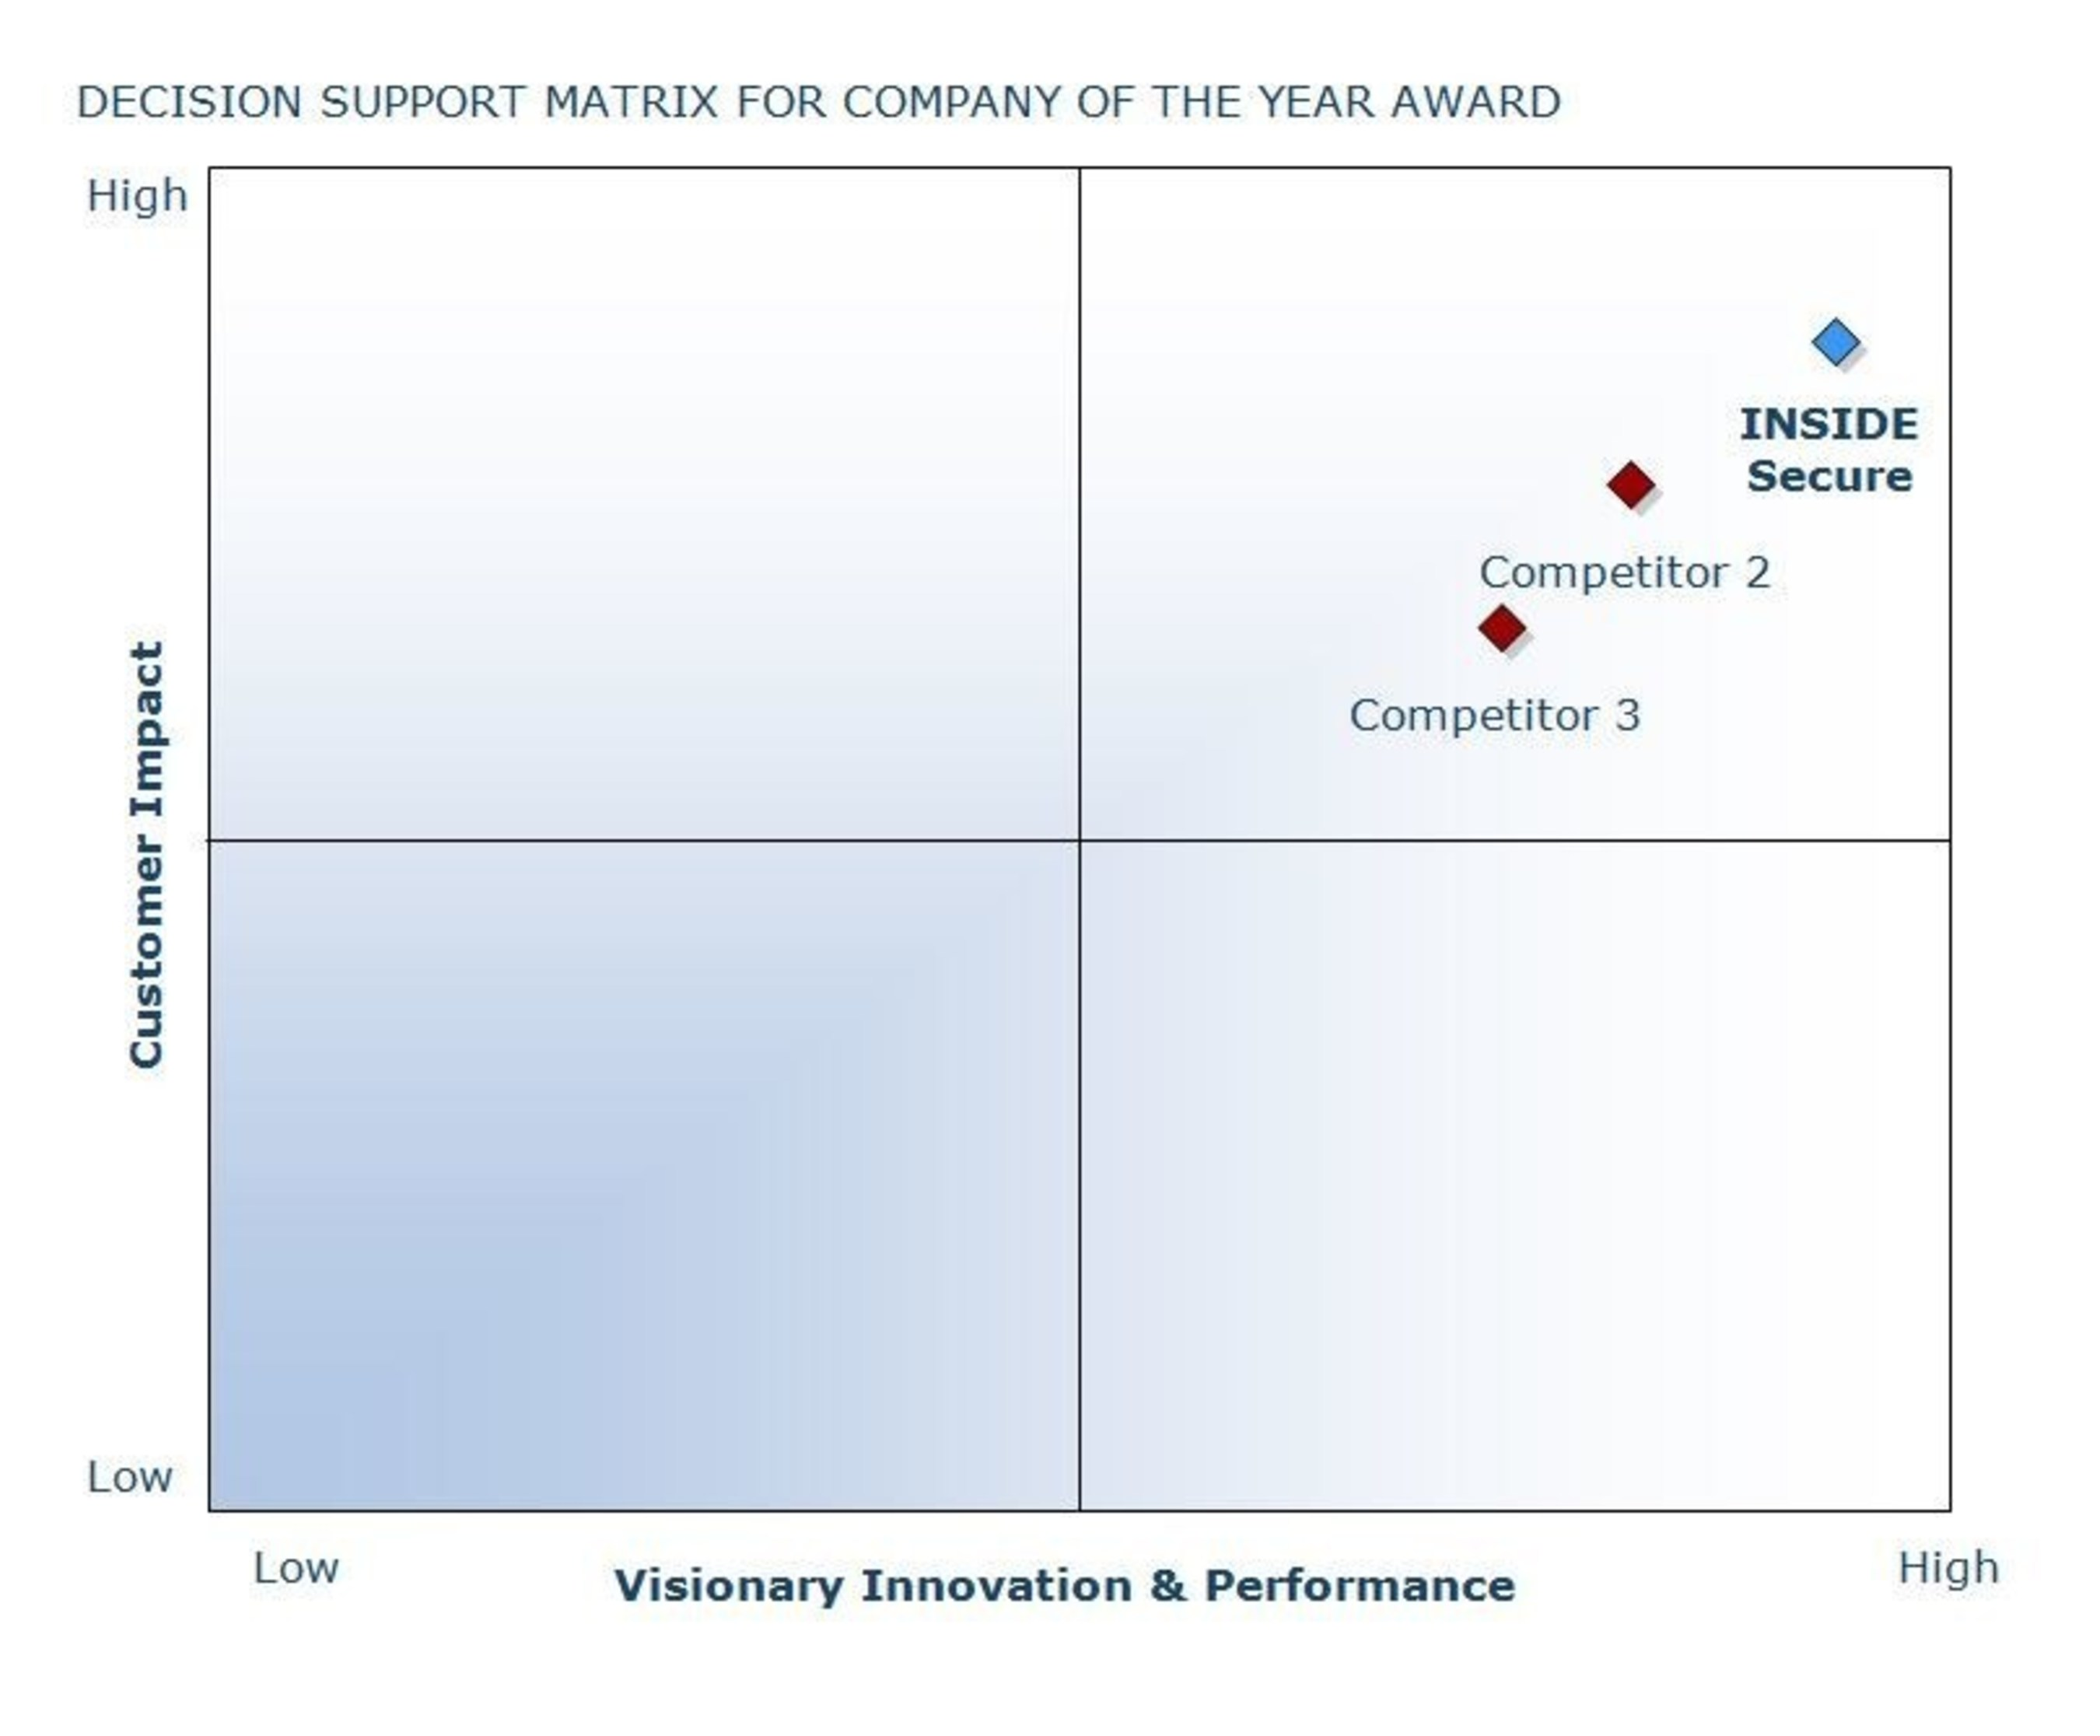 INSIDE Secure Named 2014 European Frost & Sullivan Company of the Year